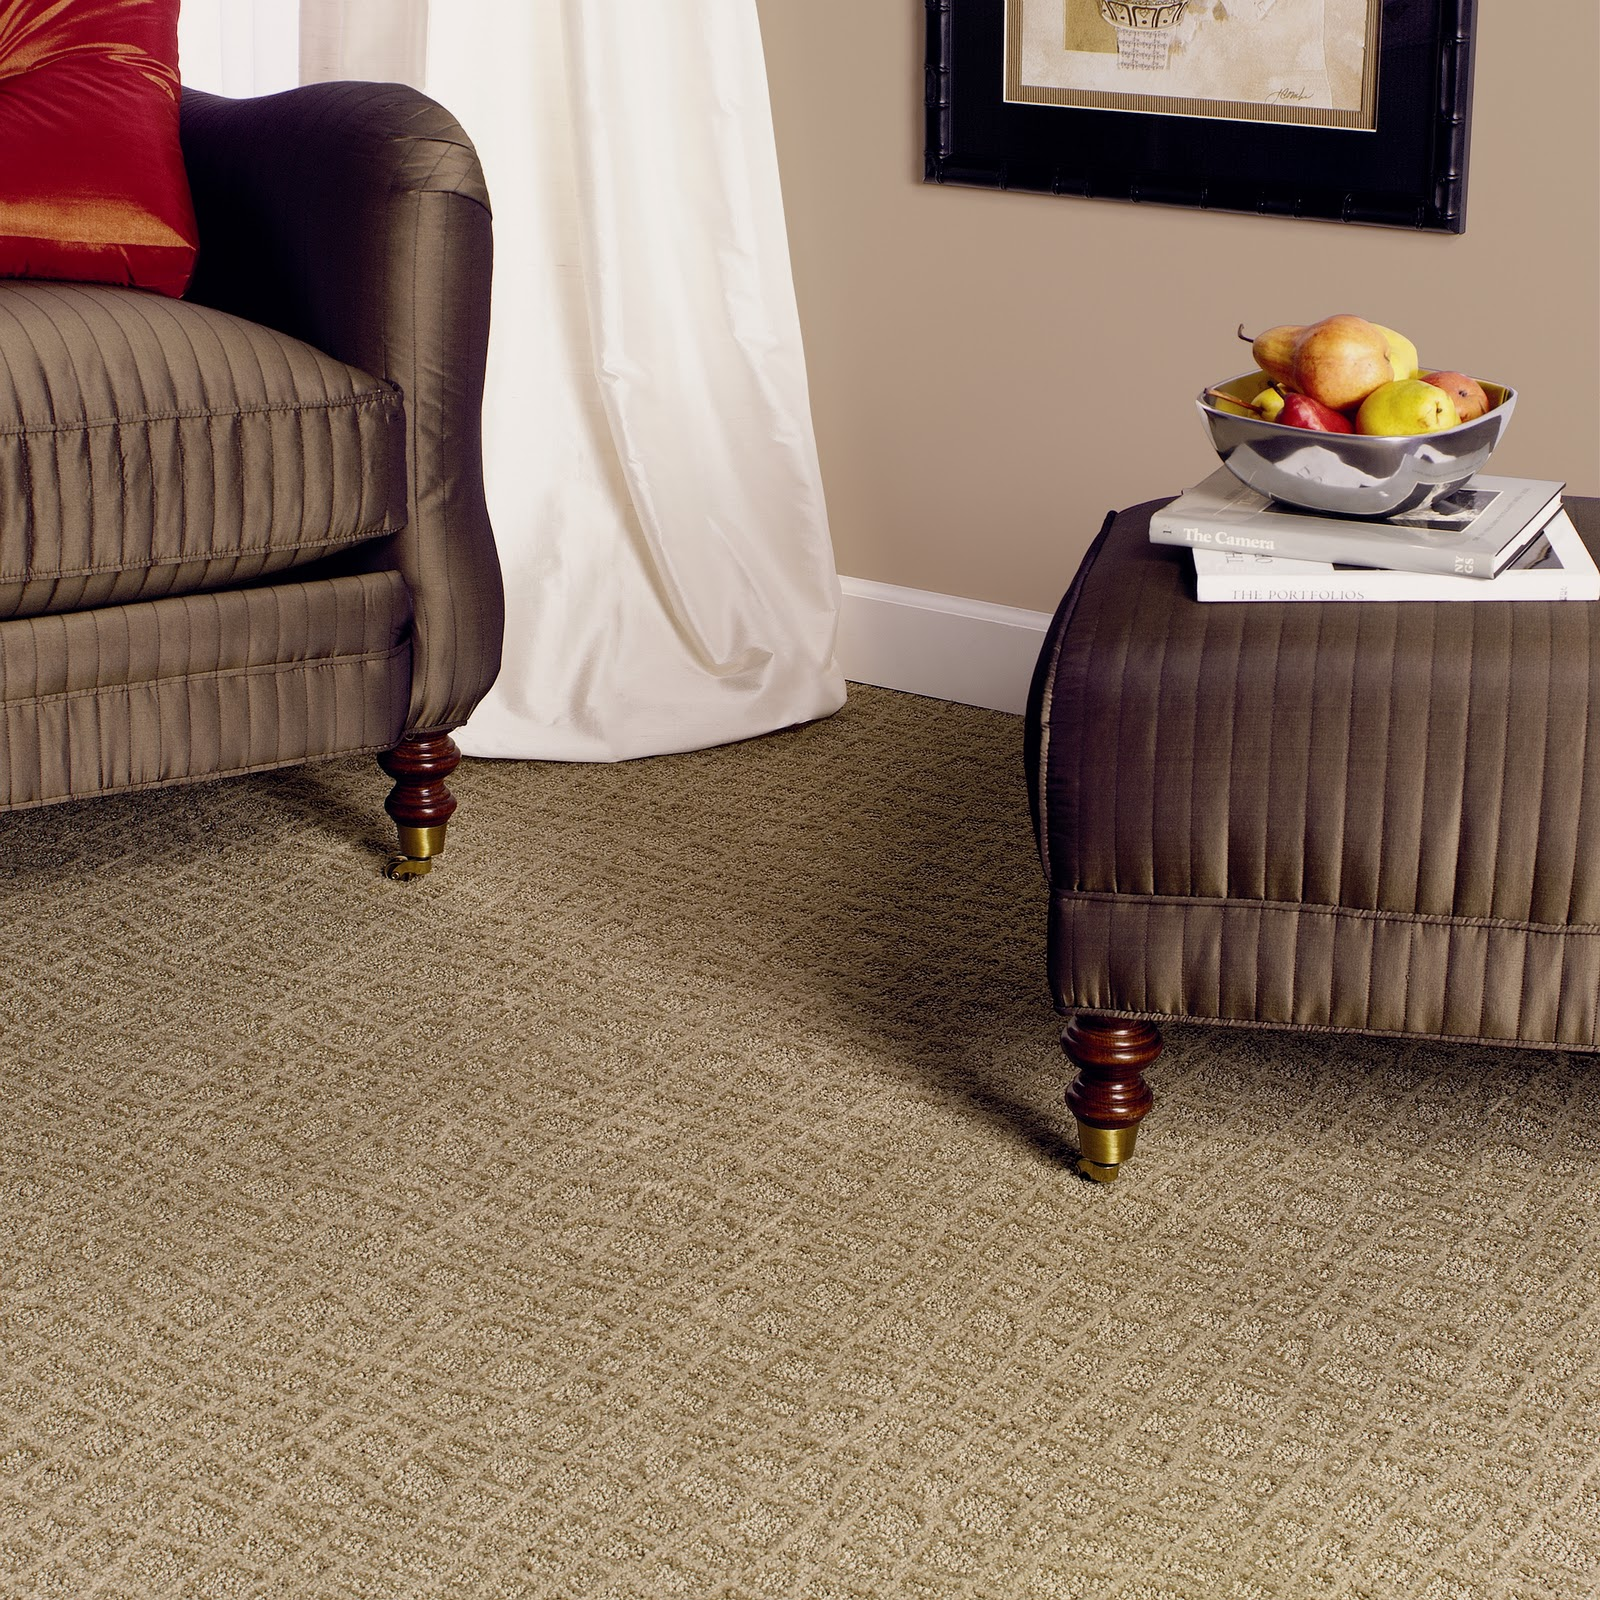 Discount flooring vs. high quality affordable carpet